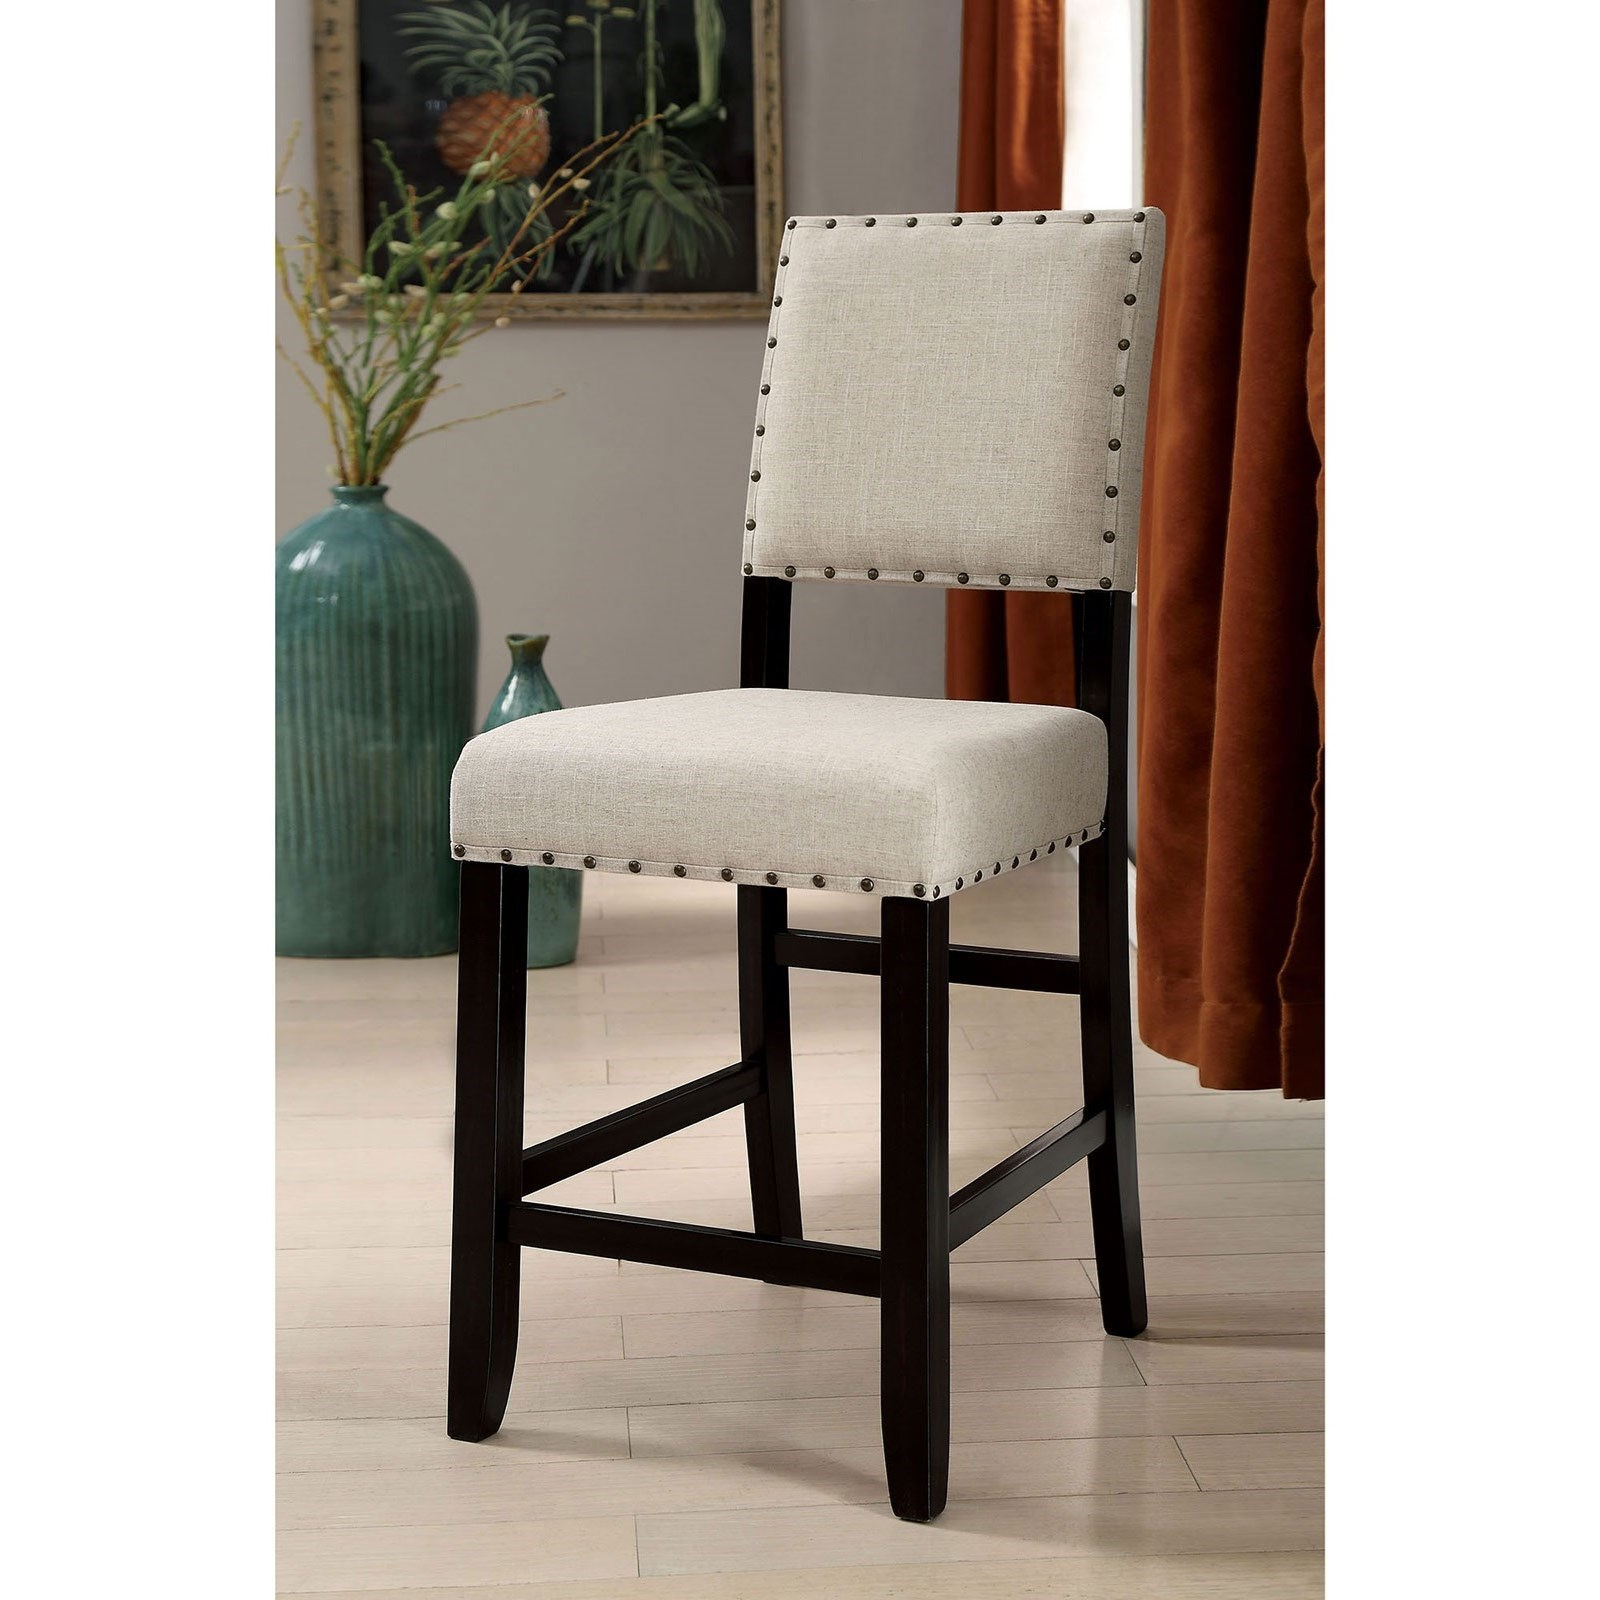 Pleasant Sania Ii Rustic Counter Height Chair 2 Pack With Nailhead Trim By Furniture Of America At Rooms For Less Cjindustries Chair Design For Home Cjindustriesco